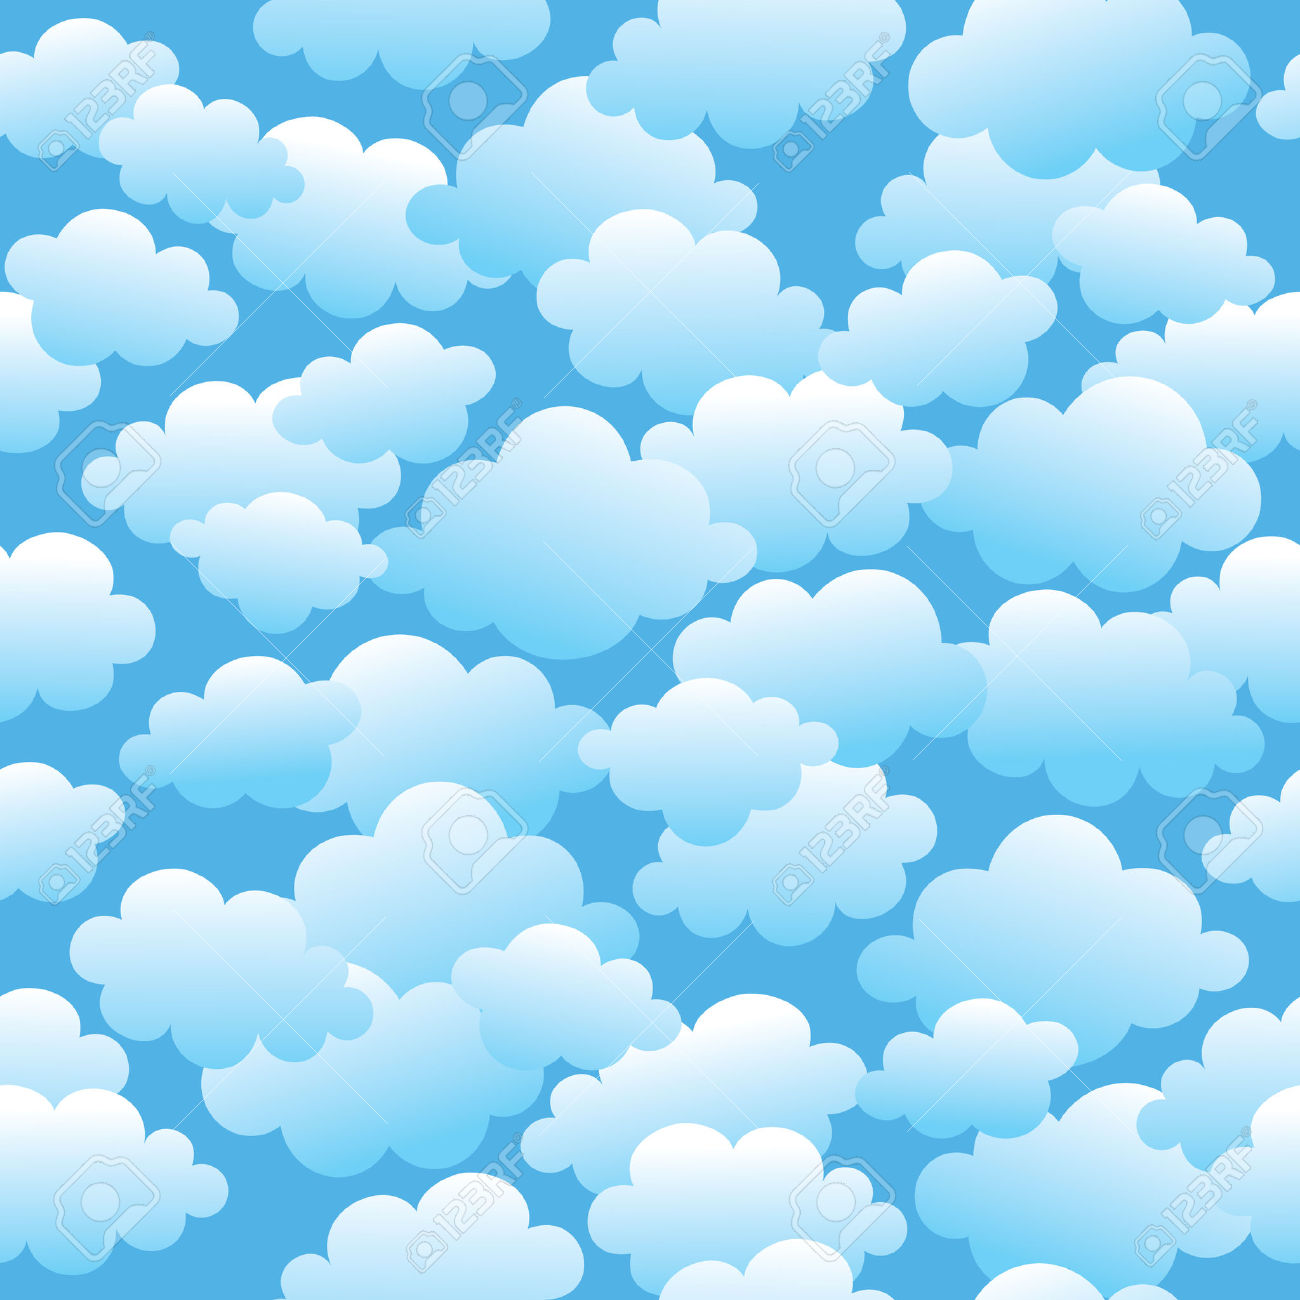 Clipart cloudy day.